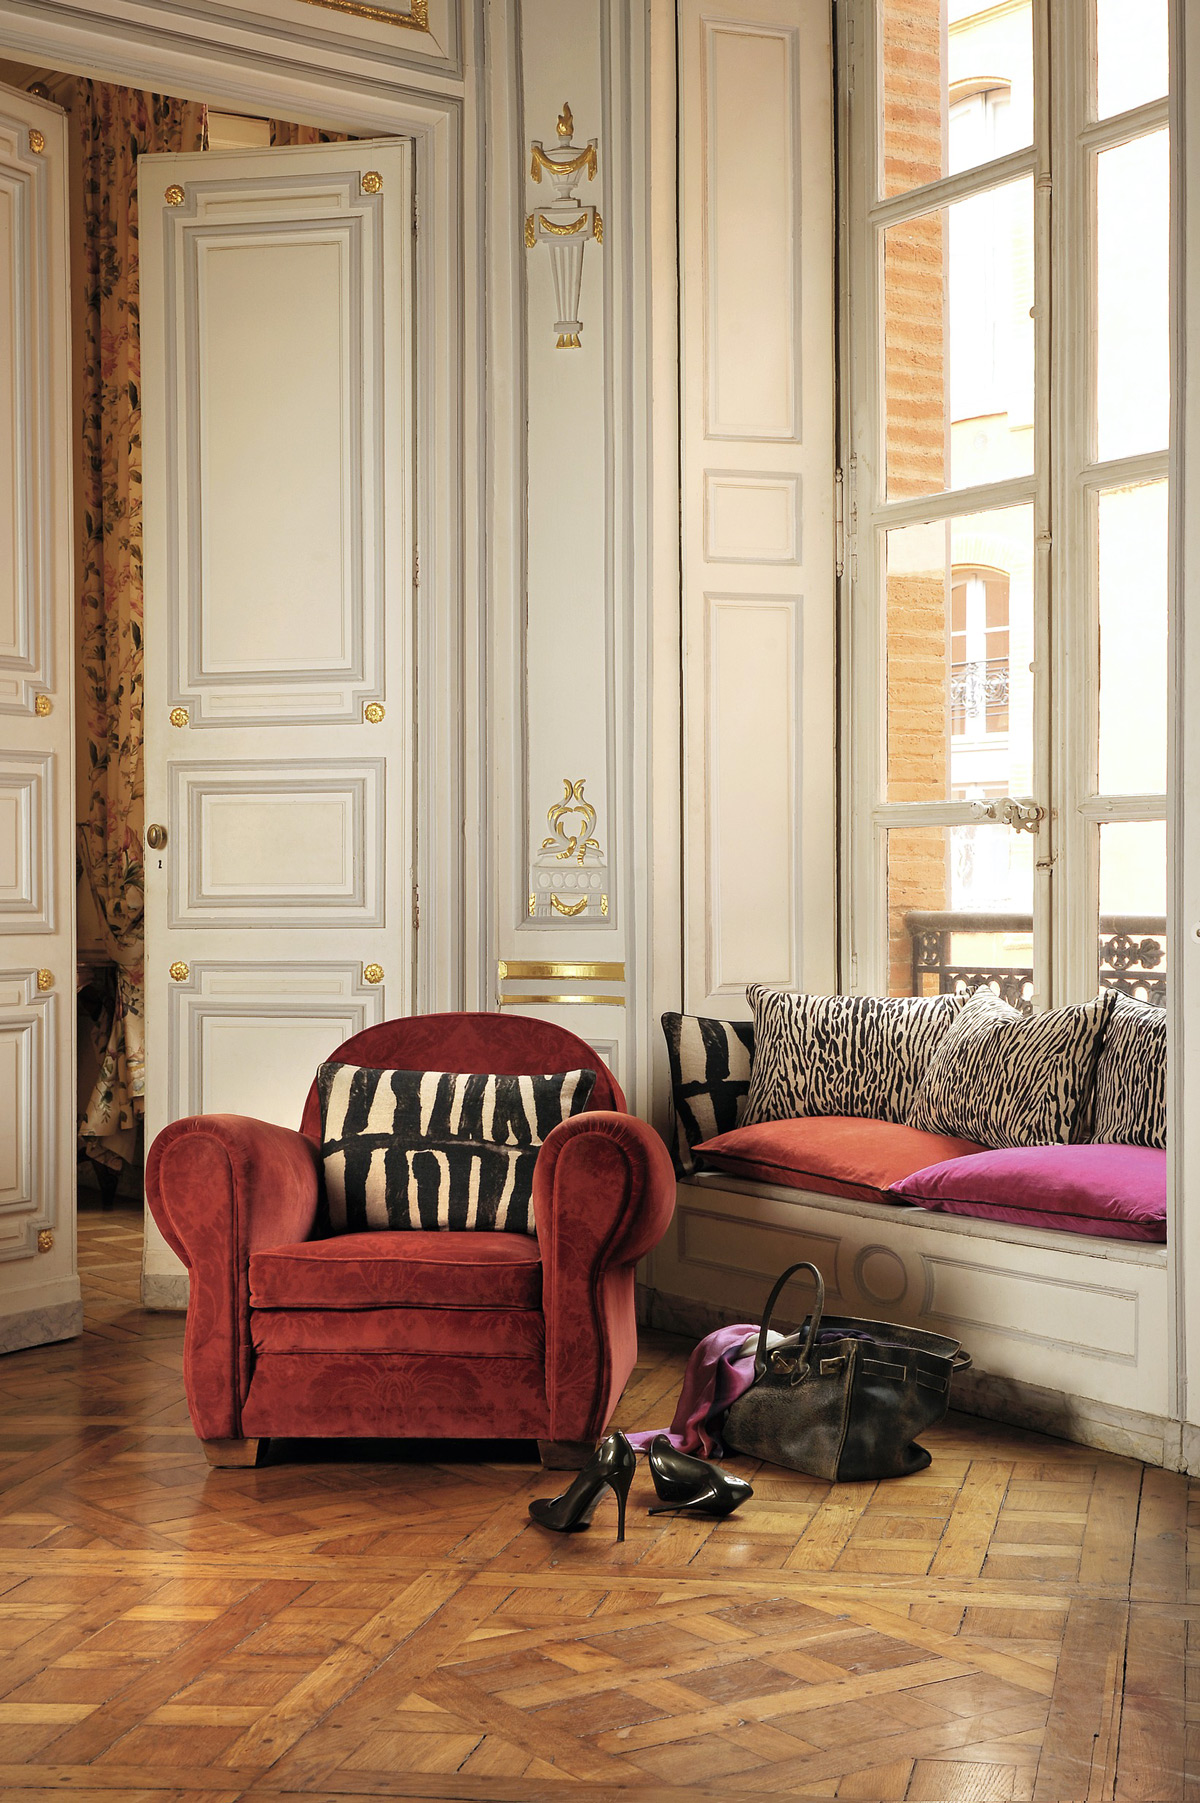 Mimilo am nagement et d coration d 39 int rieur bordeaux for Decoration amenagement interieur